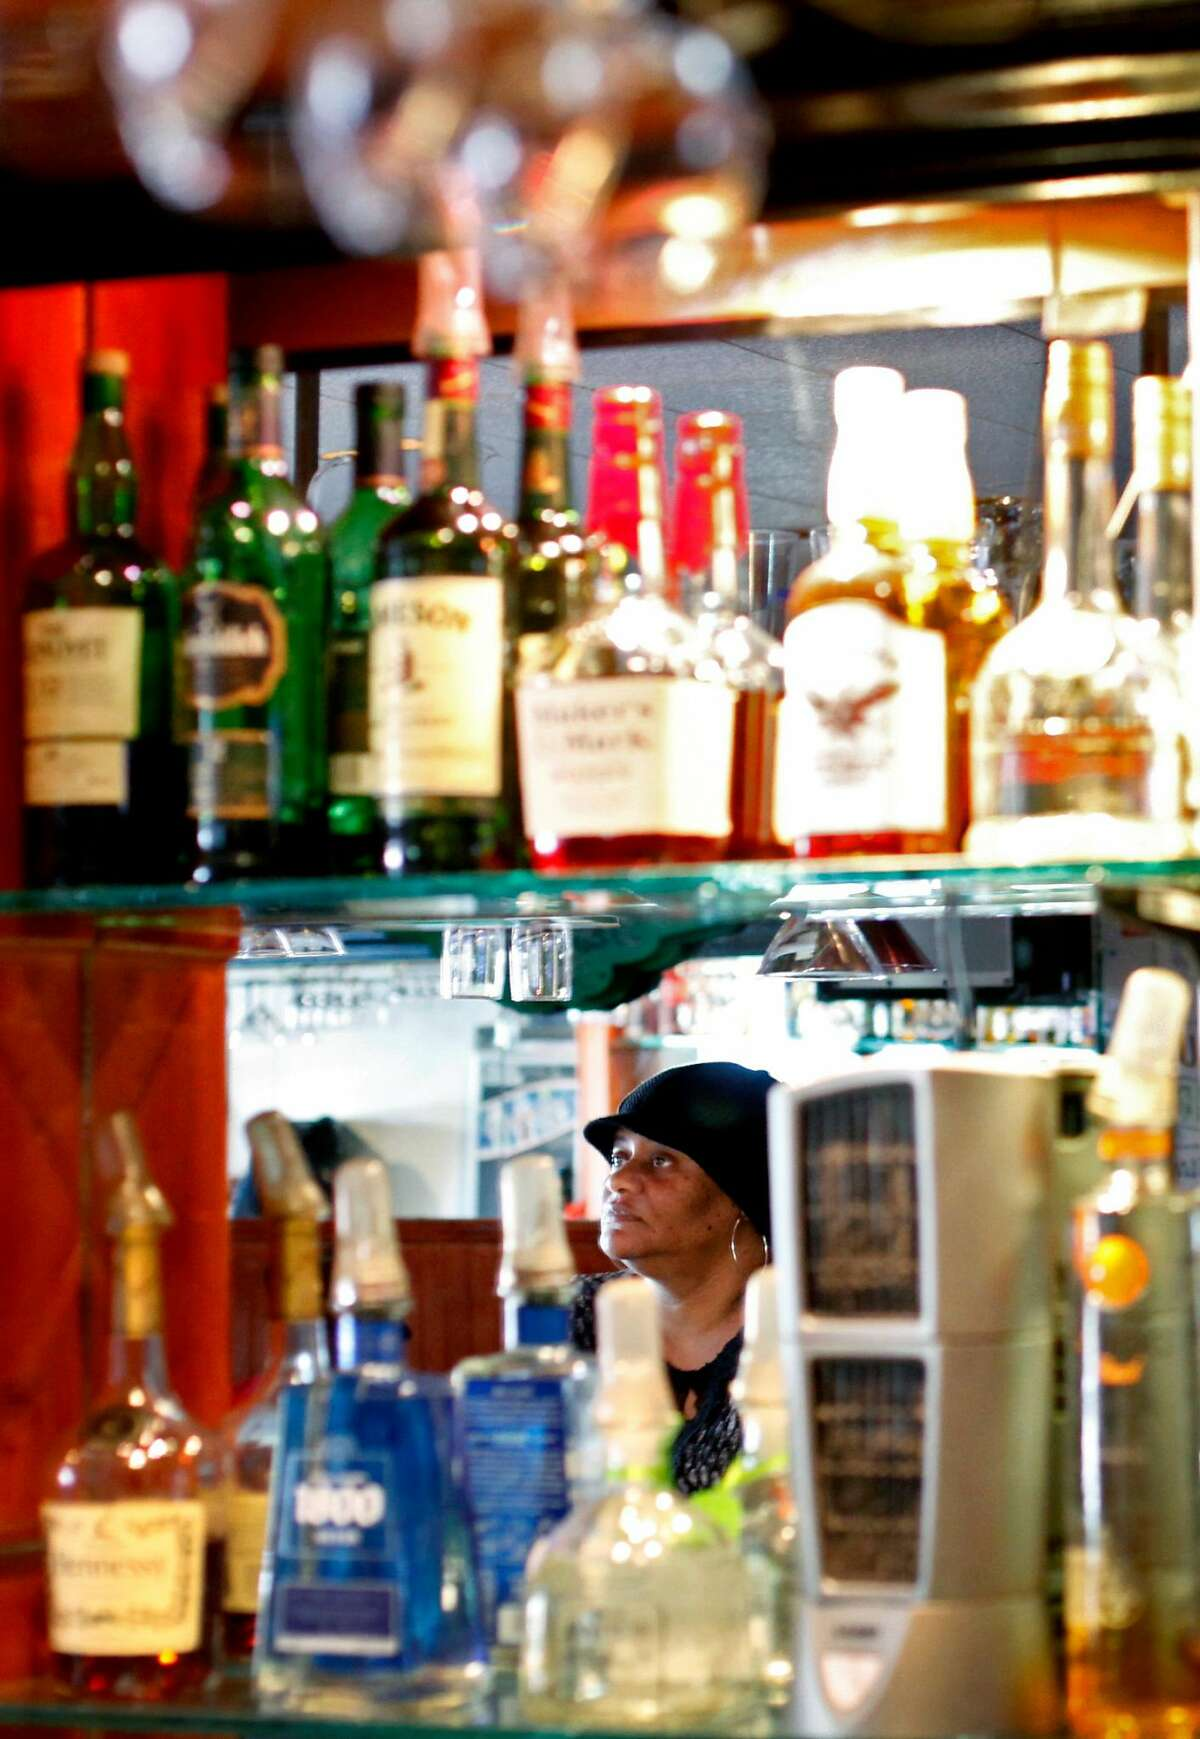 Ruth Jordan, daughter of Sam Jordan, runs Sam Jordan's Bar in San Francisco, Calif., Monday, January 21, 2013. The bar recently obtained landmark status.